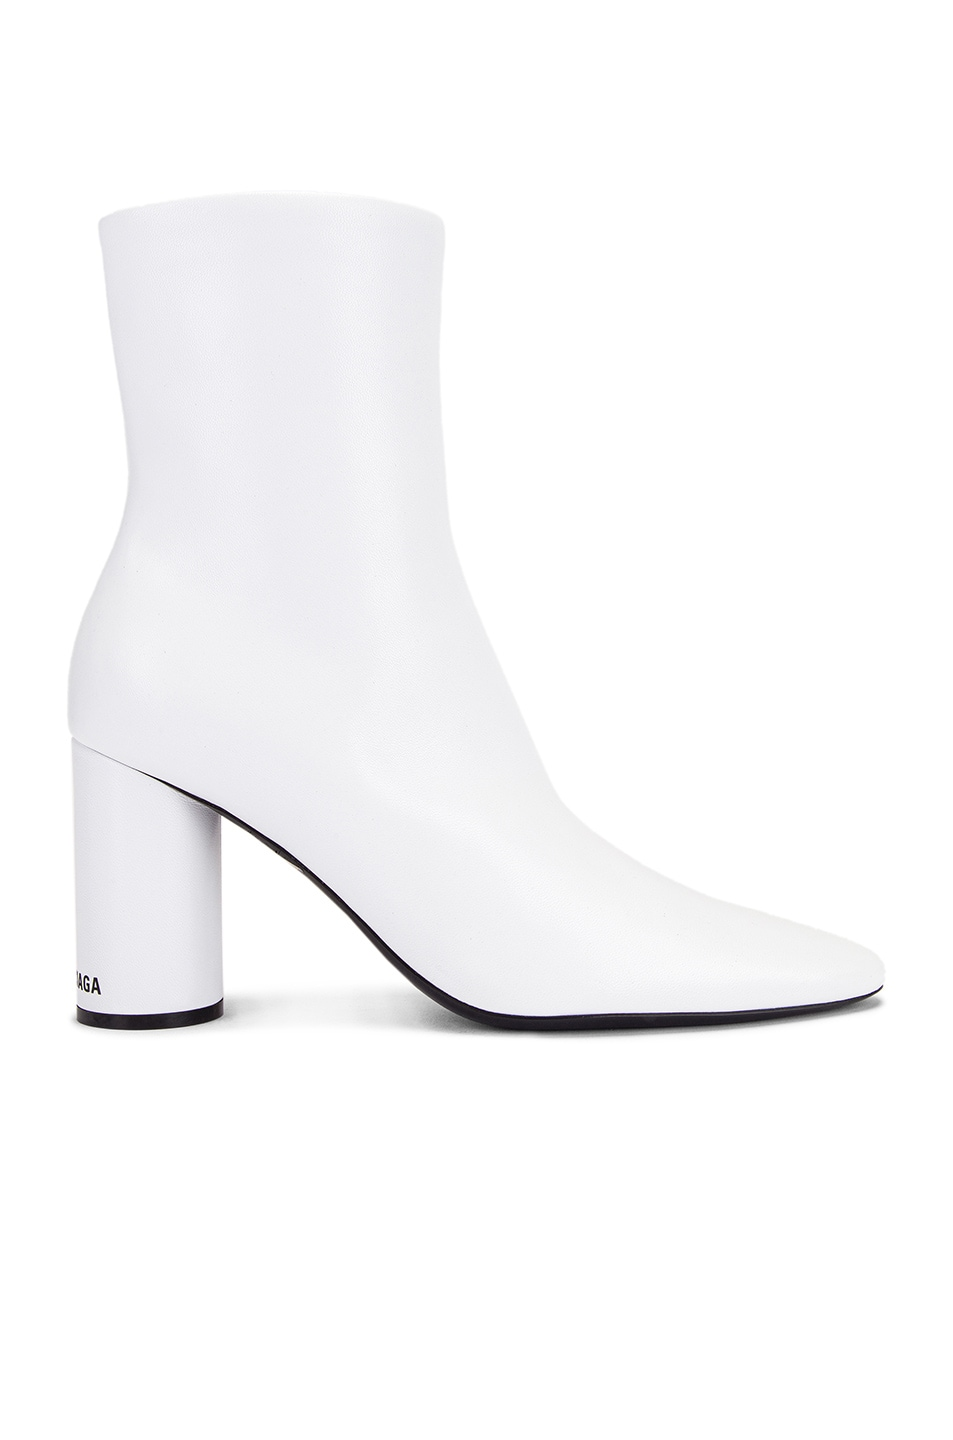 Image 1 of Balenciaga Oval Booties in White & Black